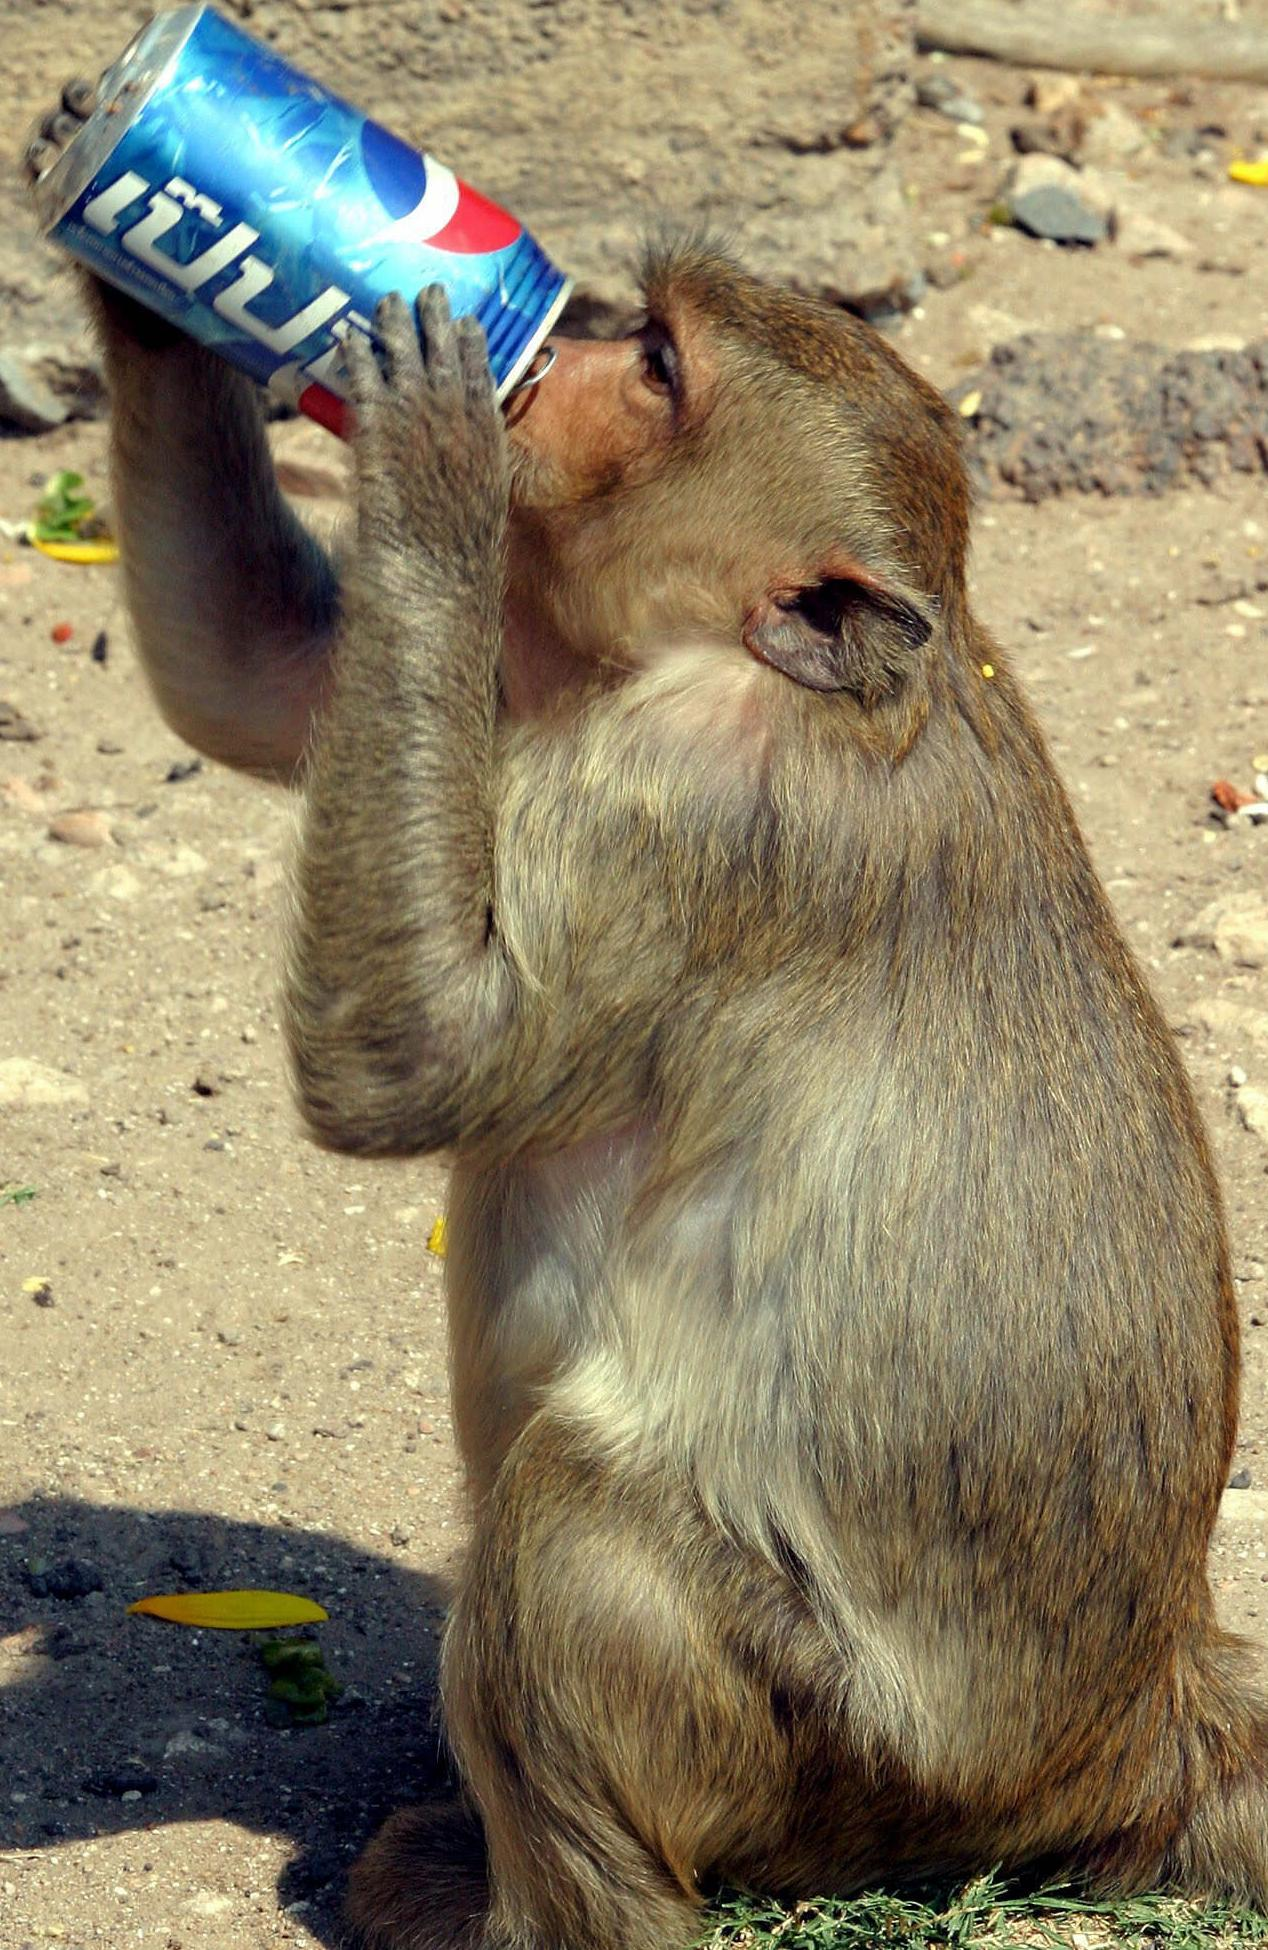 NOVEMBER 30, 2003 : A monkey drinks a can of Pepsi during the monkey feast at the Pra Prang Sam Yot temple in the city of Lopburi, about 150 km north of Bangkok, Thailand, 30/11/03. Scores of monkeys which inhabit the city are treated to a banquet of fruit and vegetables and soft drinks every year in November as the city's way of thanking them for drawing tourists to the town. Thailand / Animal Travel